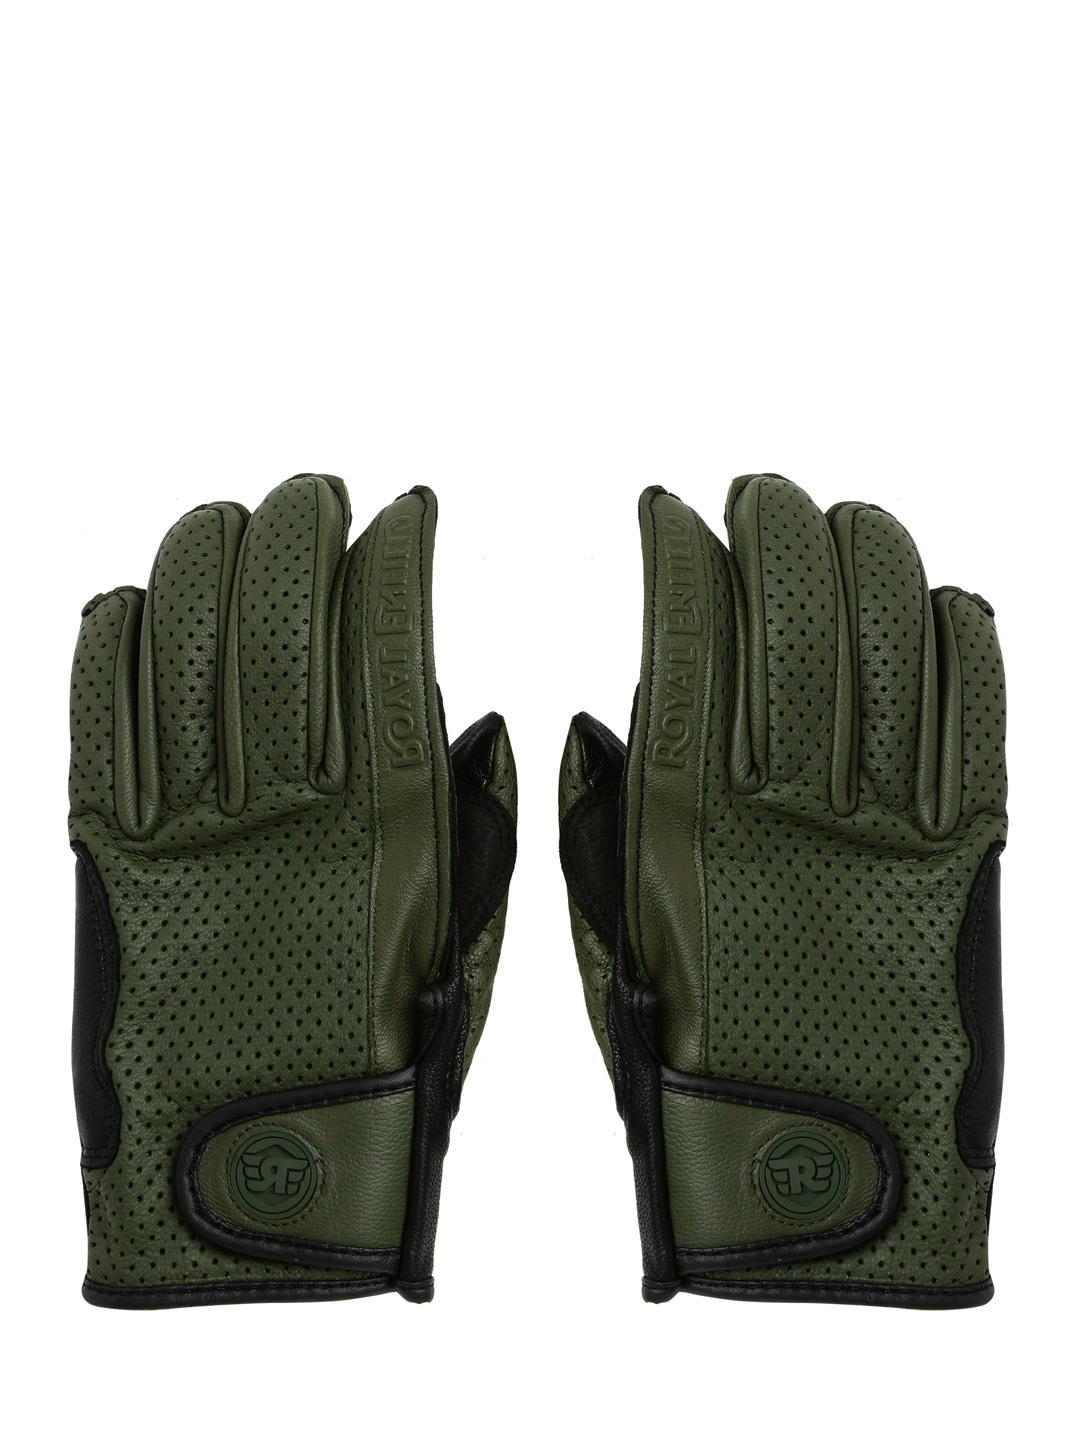 Motorcycle leather gloves india - Royal Enfield Unisex Olive Green Leather Summer Riding Motorcycle Gloves